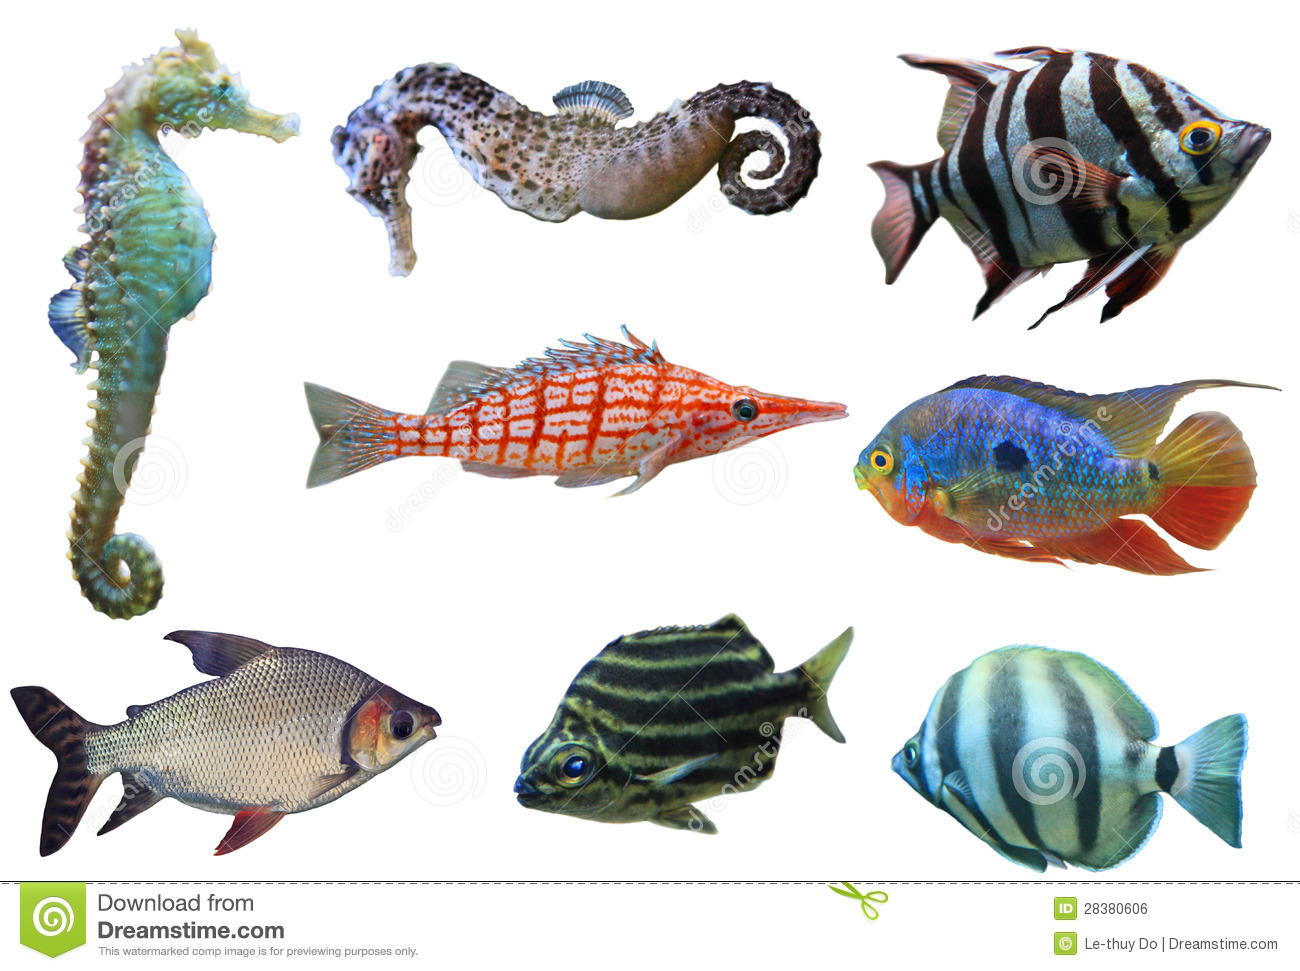 Aquarium fish stock photo image of cornutus acanthurus for Image of fish